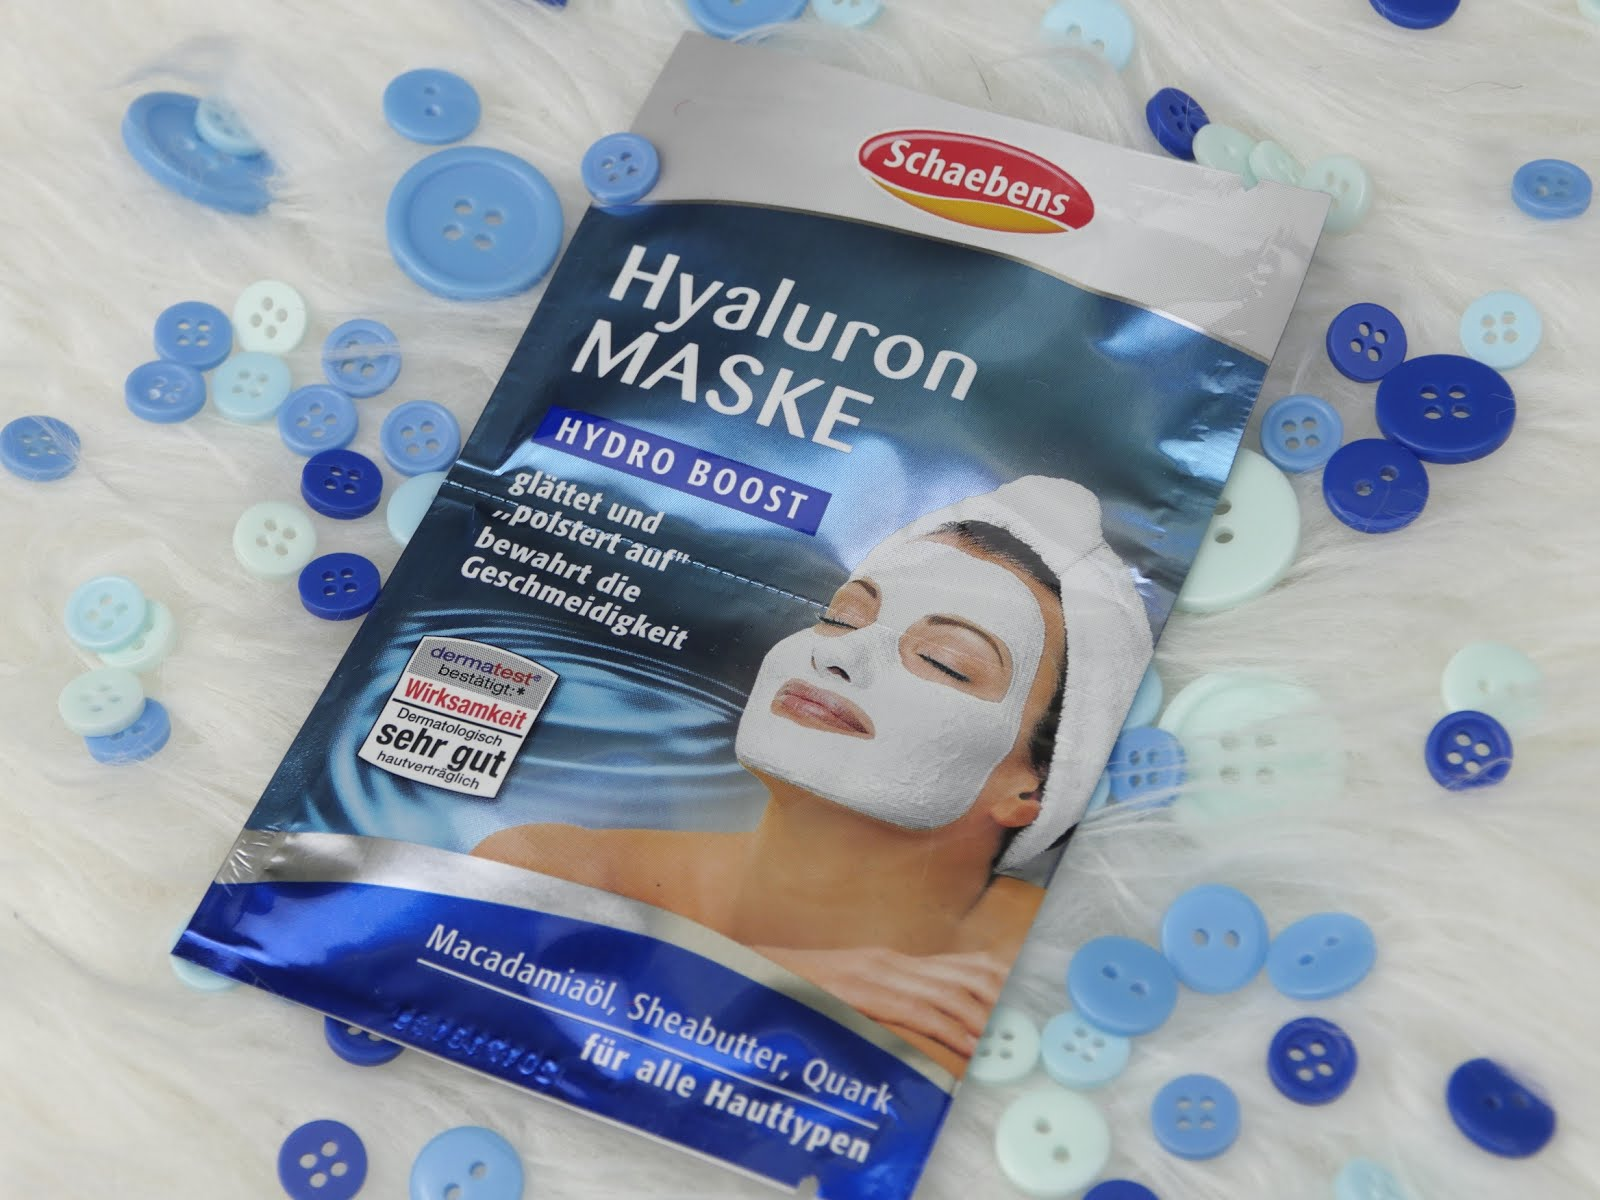 Maske Mit Quark Sahlata Is Curious Review Schaebens Hyaluron Maske